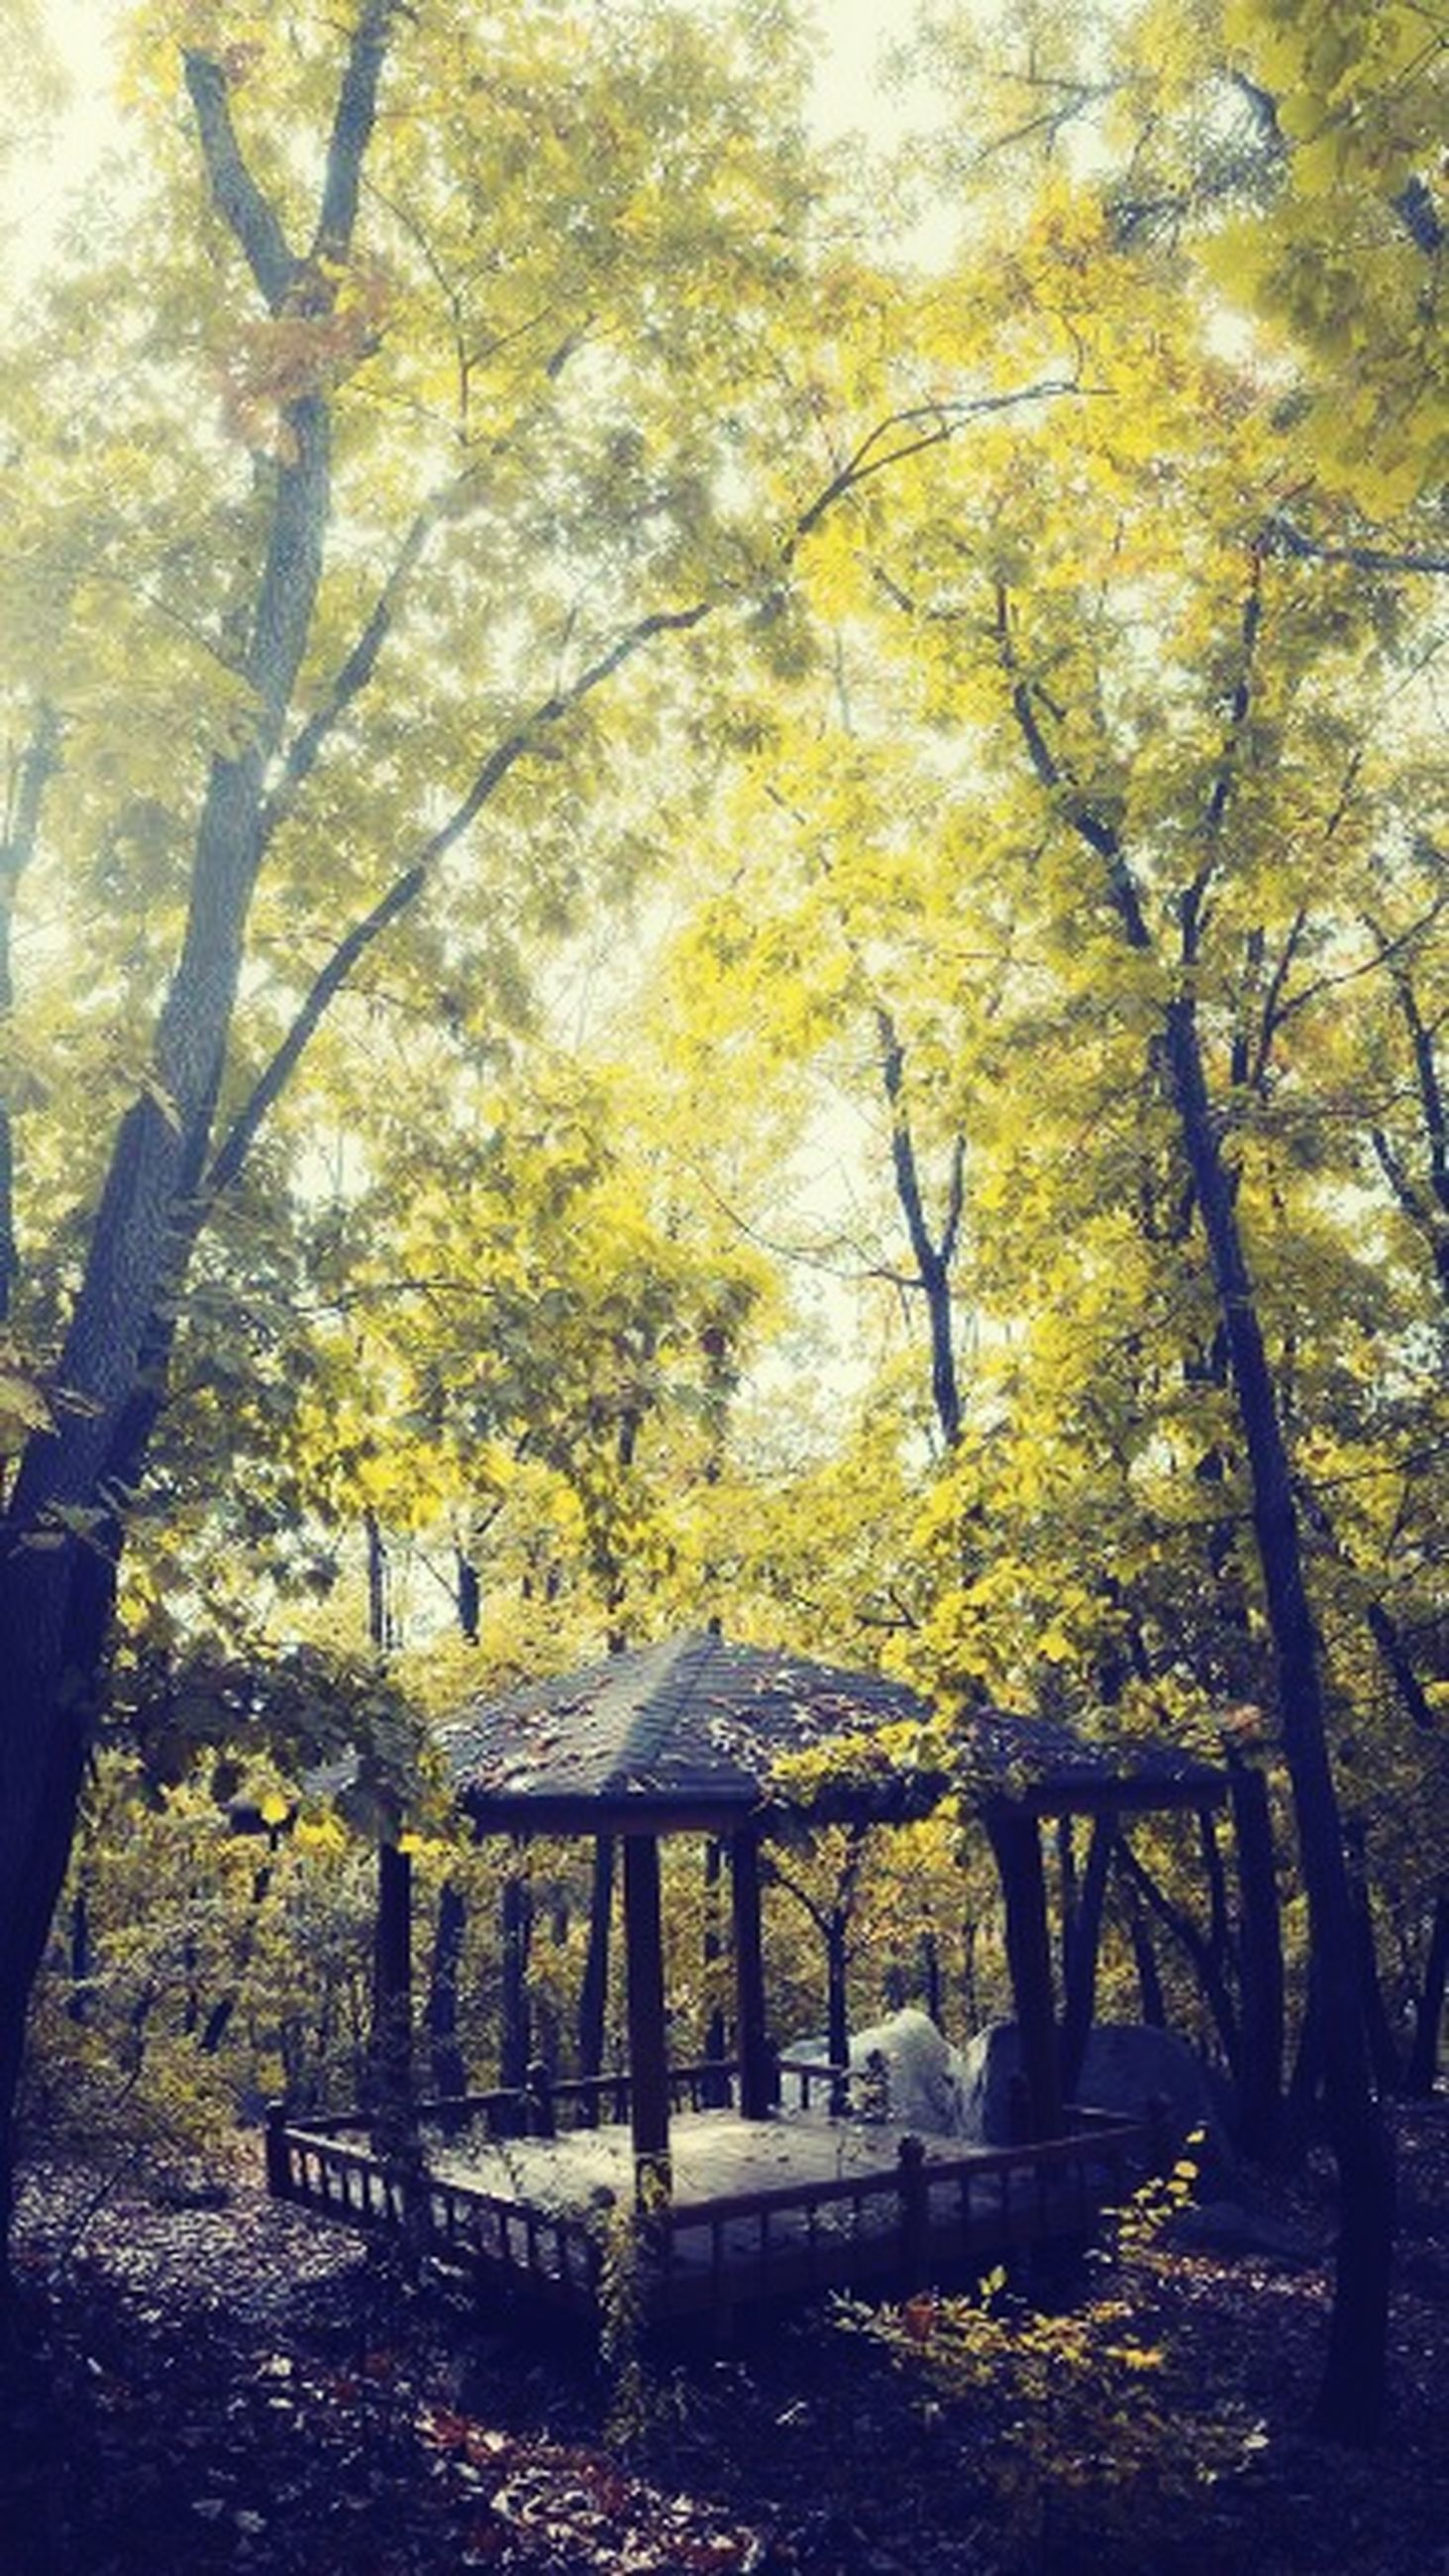 tree, tree trunk, branch, autumn, growth, nature, tranquility, change, park - man made space, beauty in nature, day, yellow, sunlight, forest, outdoors, season, tranquil scene, scenics, no people, low angle view